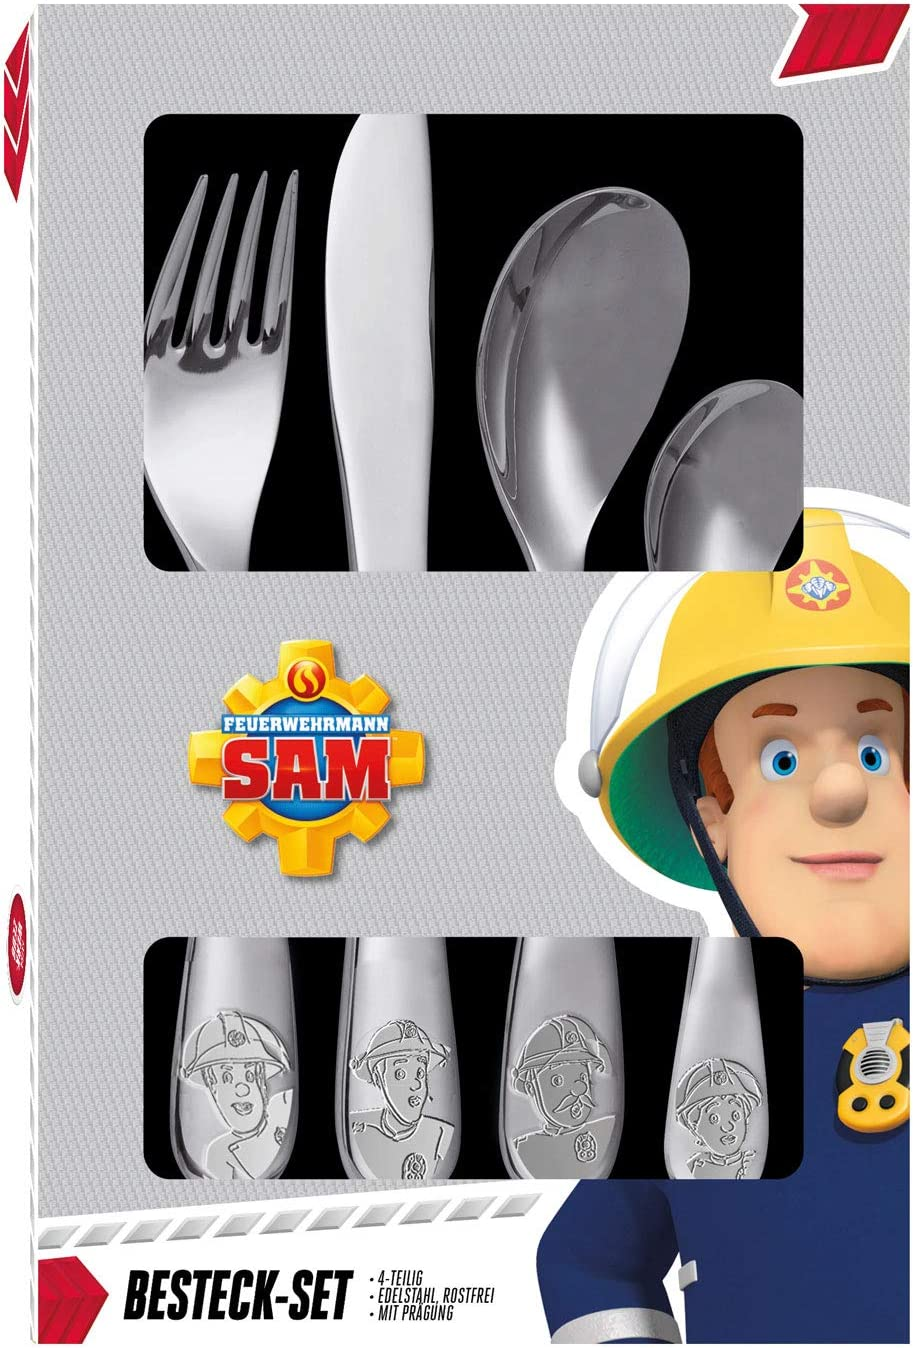 Consisting of Knife POS 27138 Cutlery Set with Fireman Sam Embossing Large and Small Spoon Fork Dishwasher Safe 4 Piece Childrens Cutlery Set Made of Stainless Steel